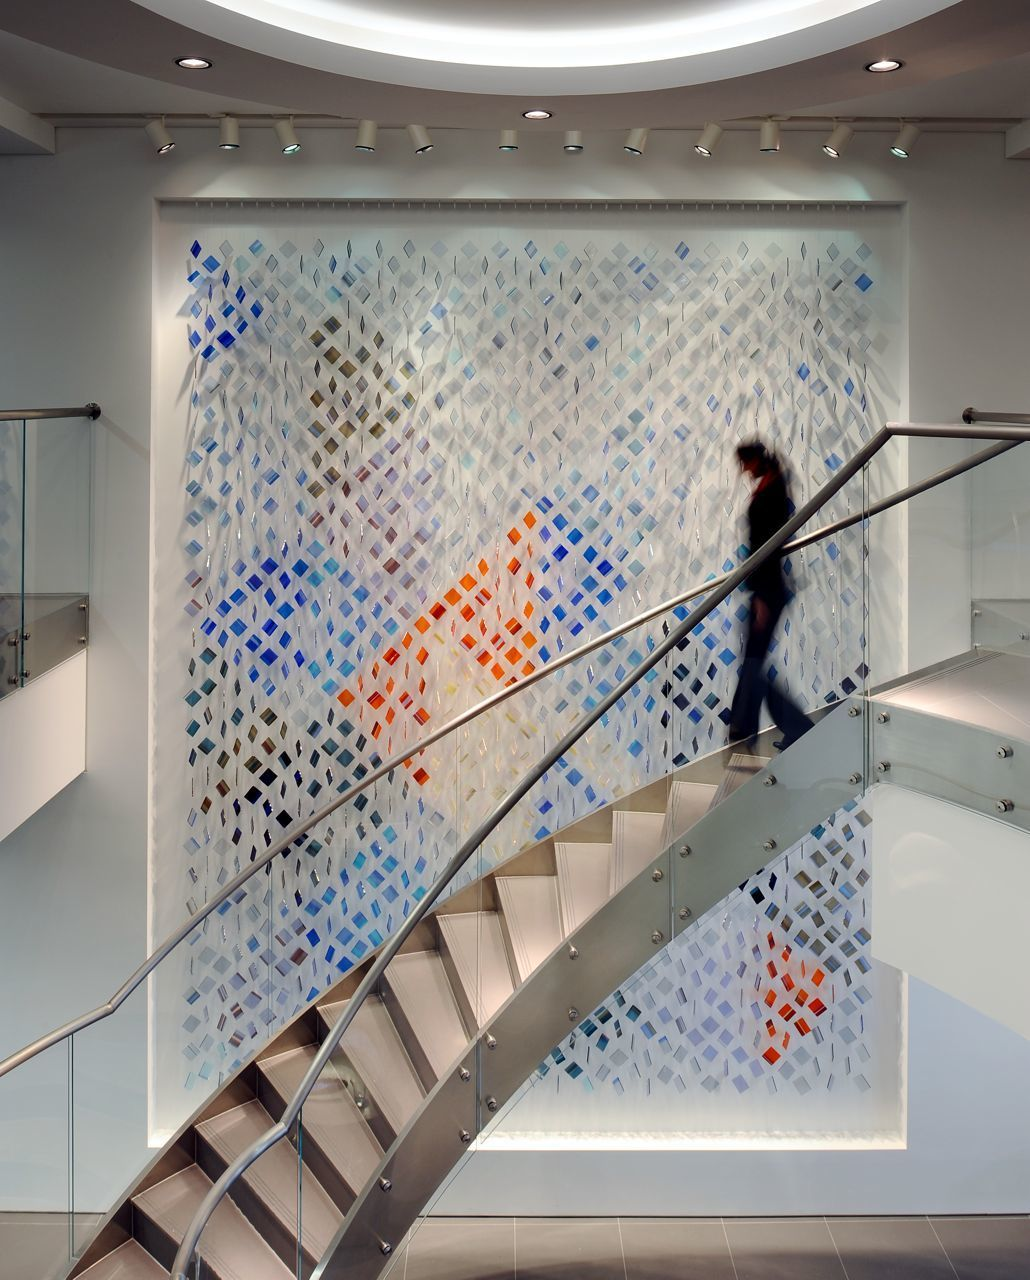 Glass artwork, hand made and suspended. London EC2